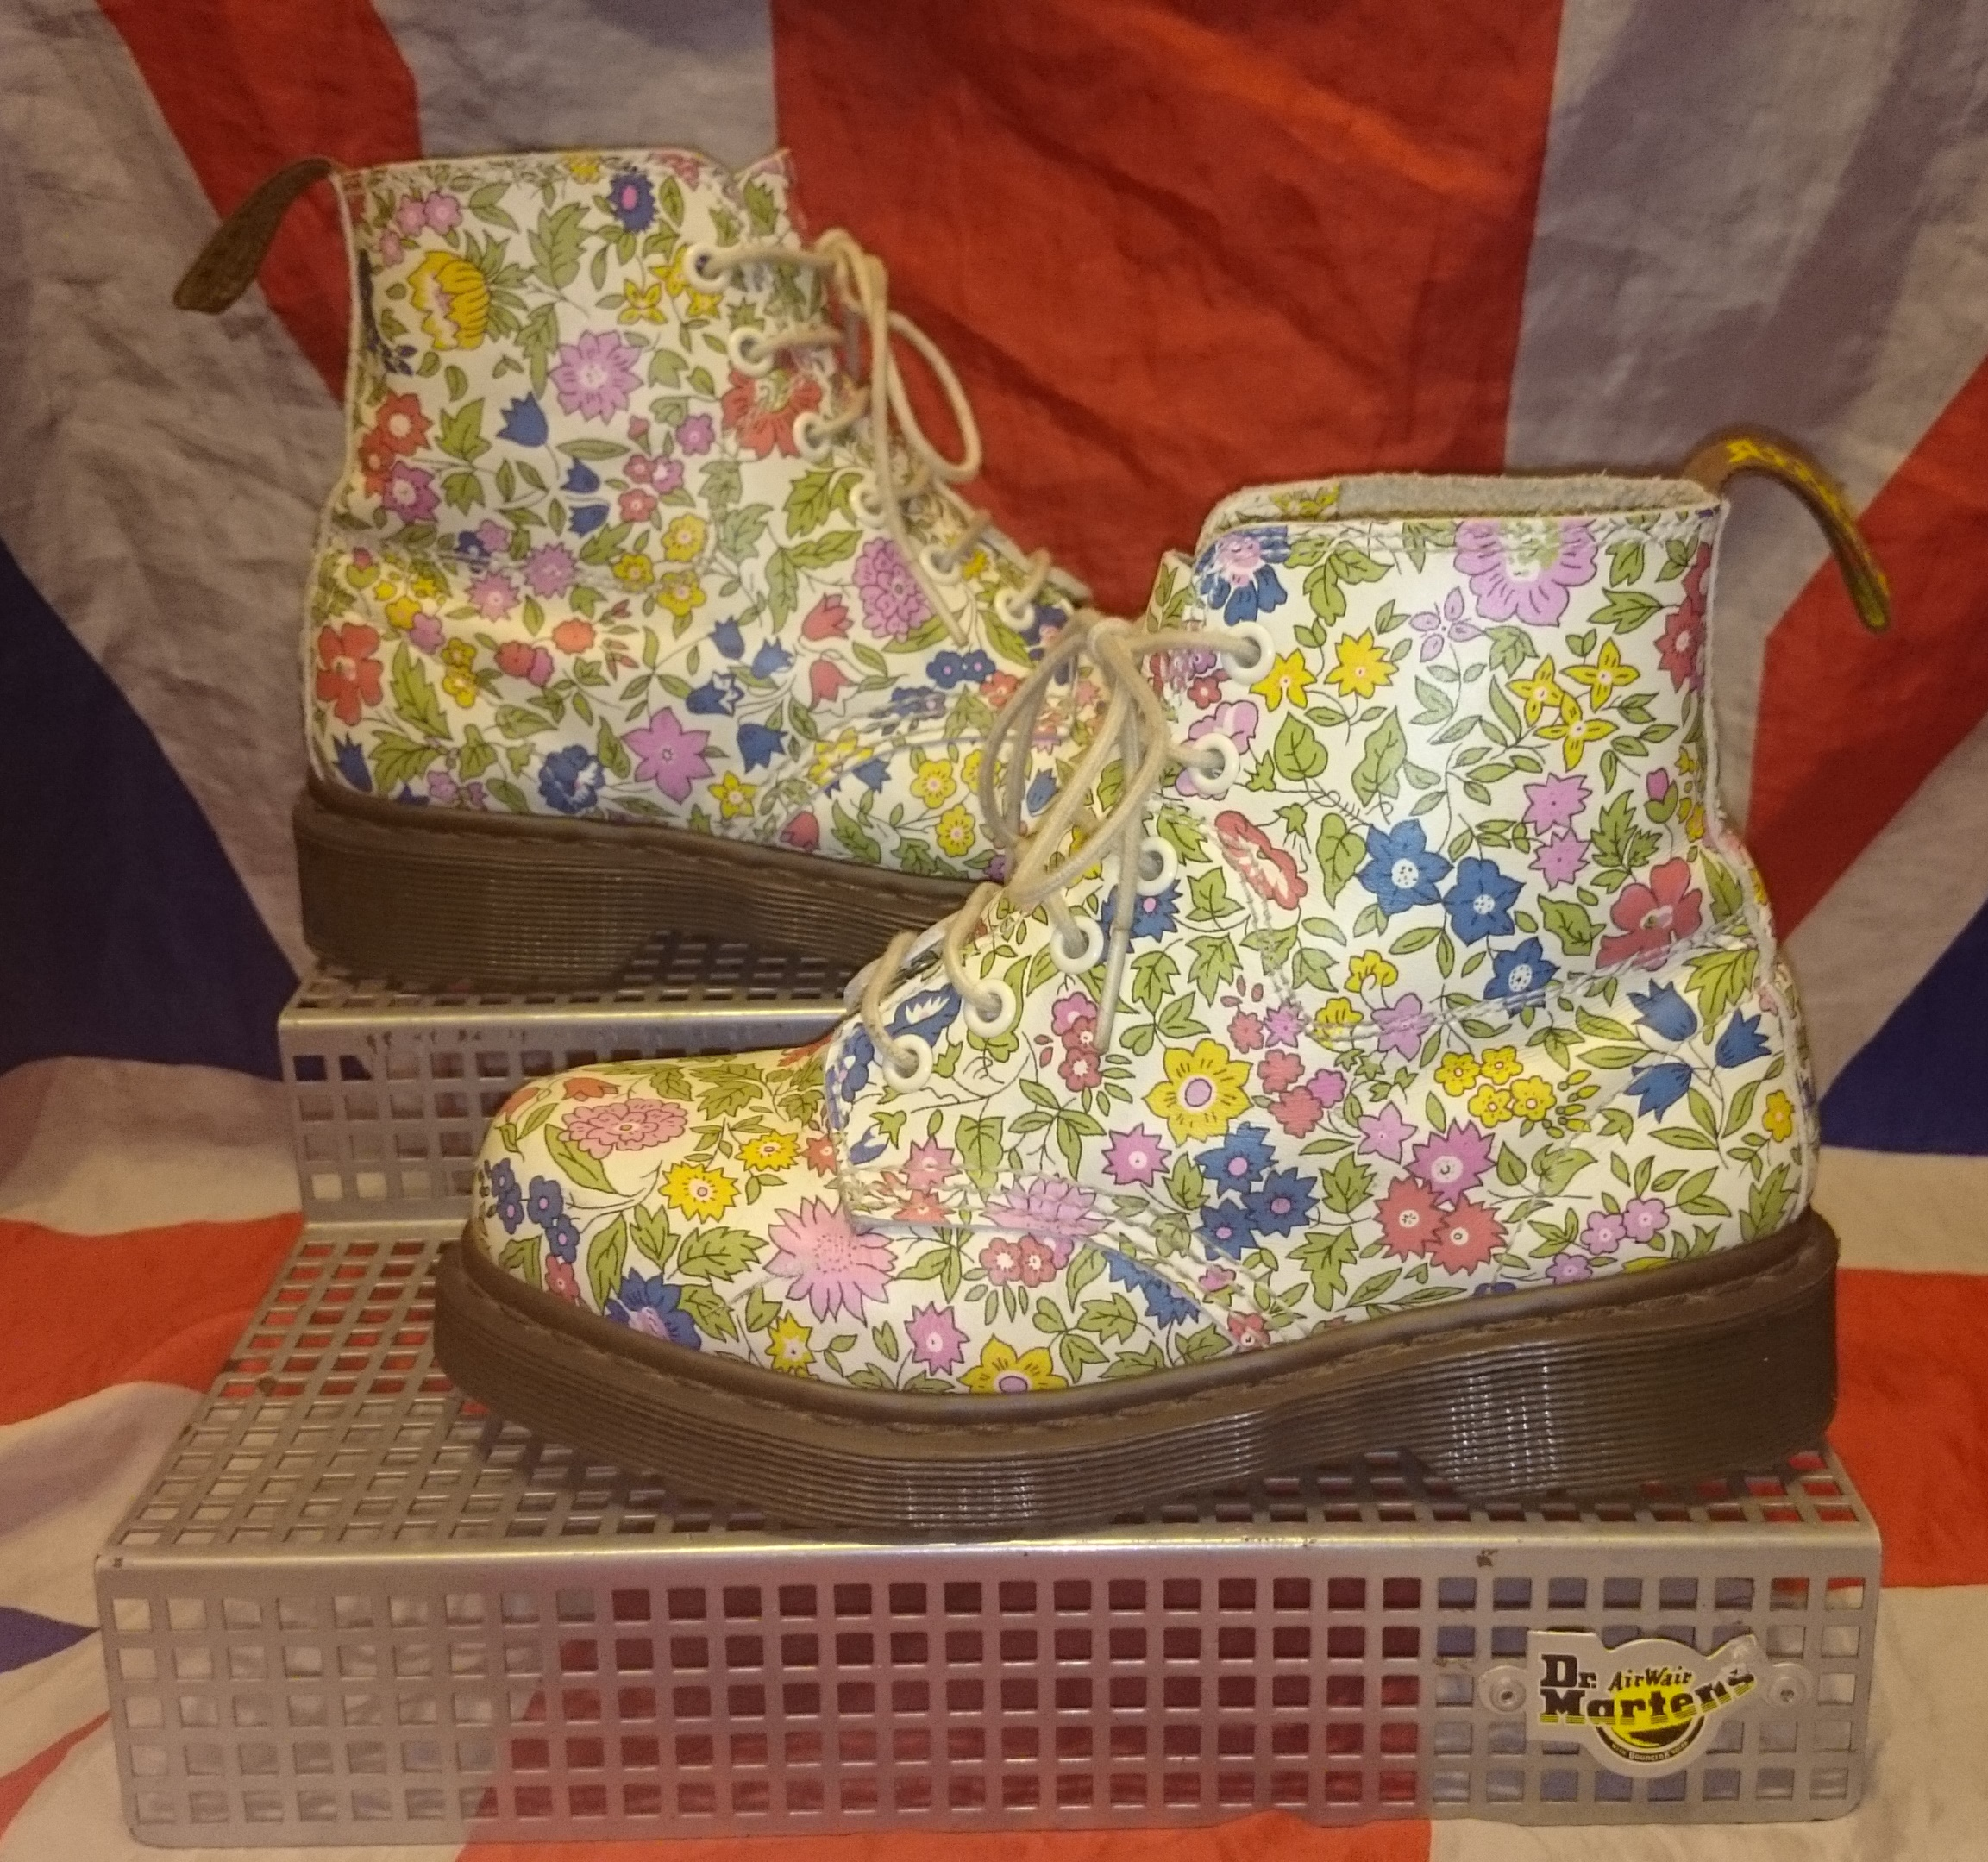 Rare liberty london floral dr doc martens boots white flowers uk rare liberty london floral dr doc martens boots white flowers uk 3eu mightylinksfo Image collections